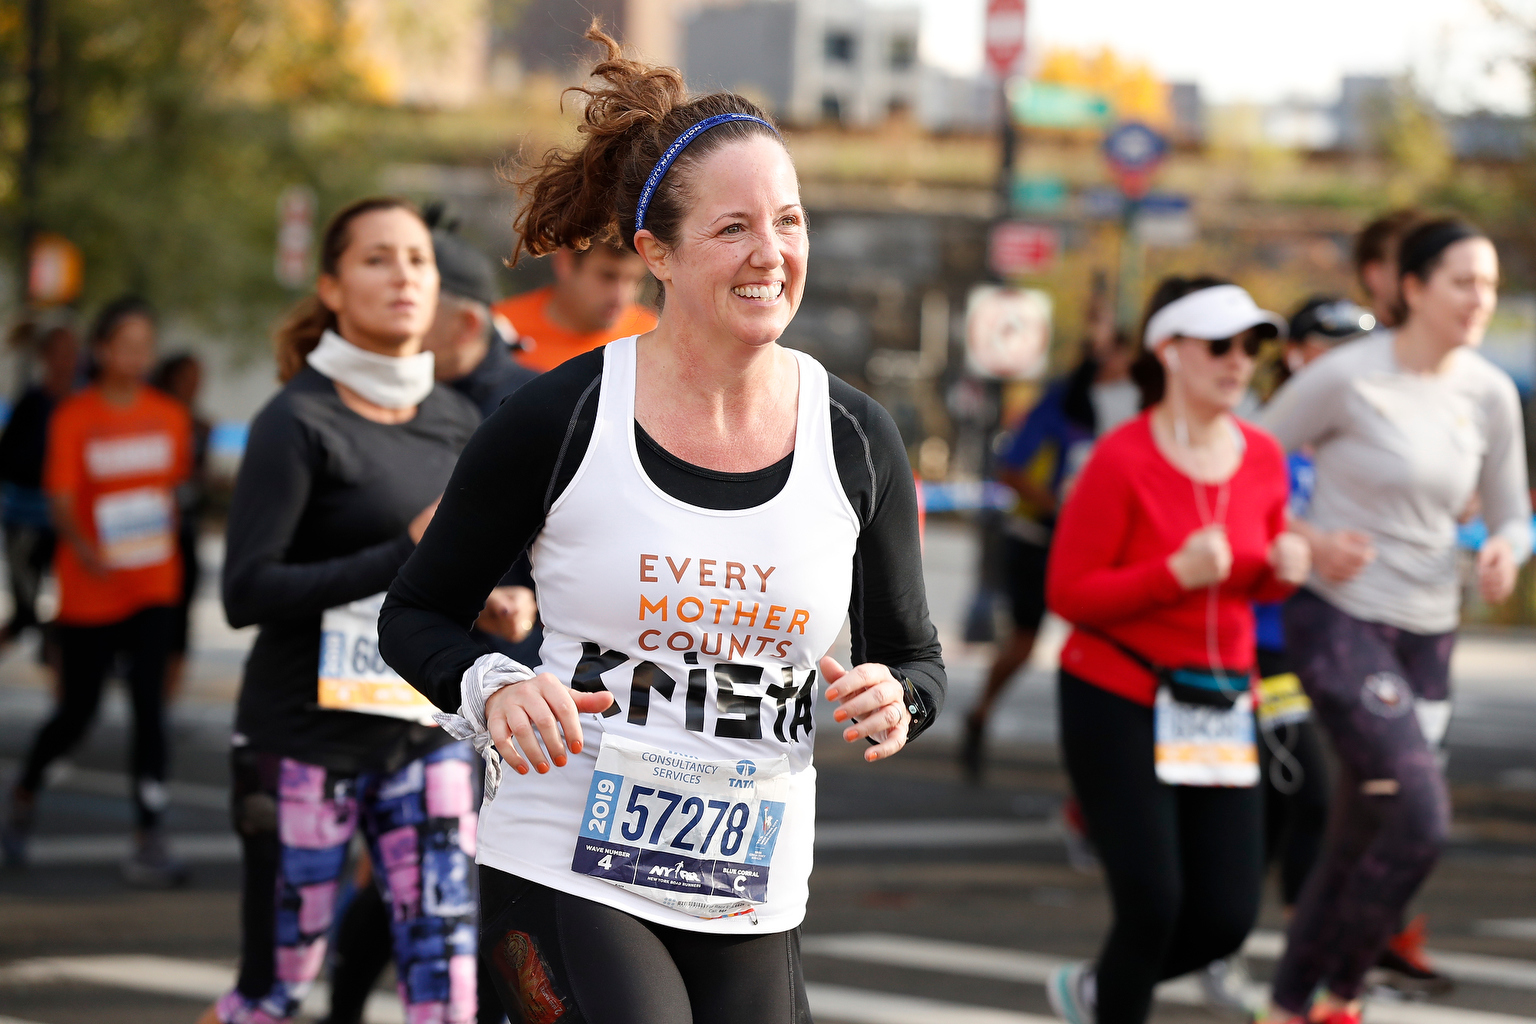 A runner with Every Mother Counts running in the TCS New York City Marathon